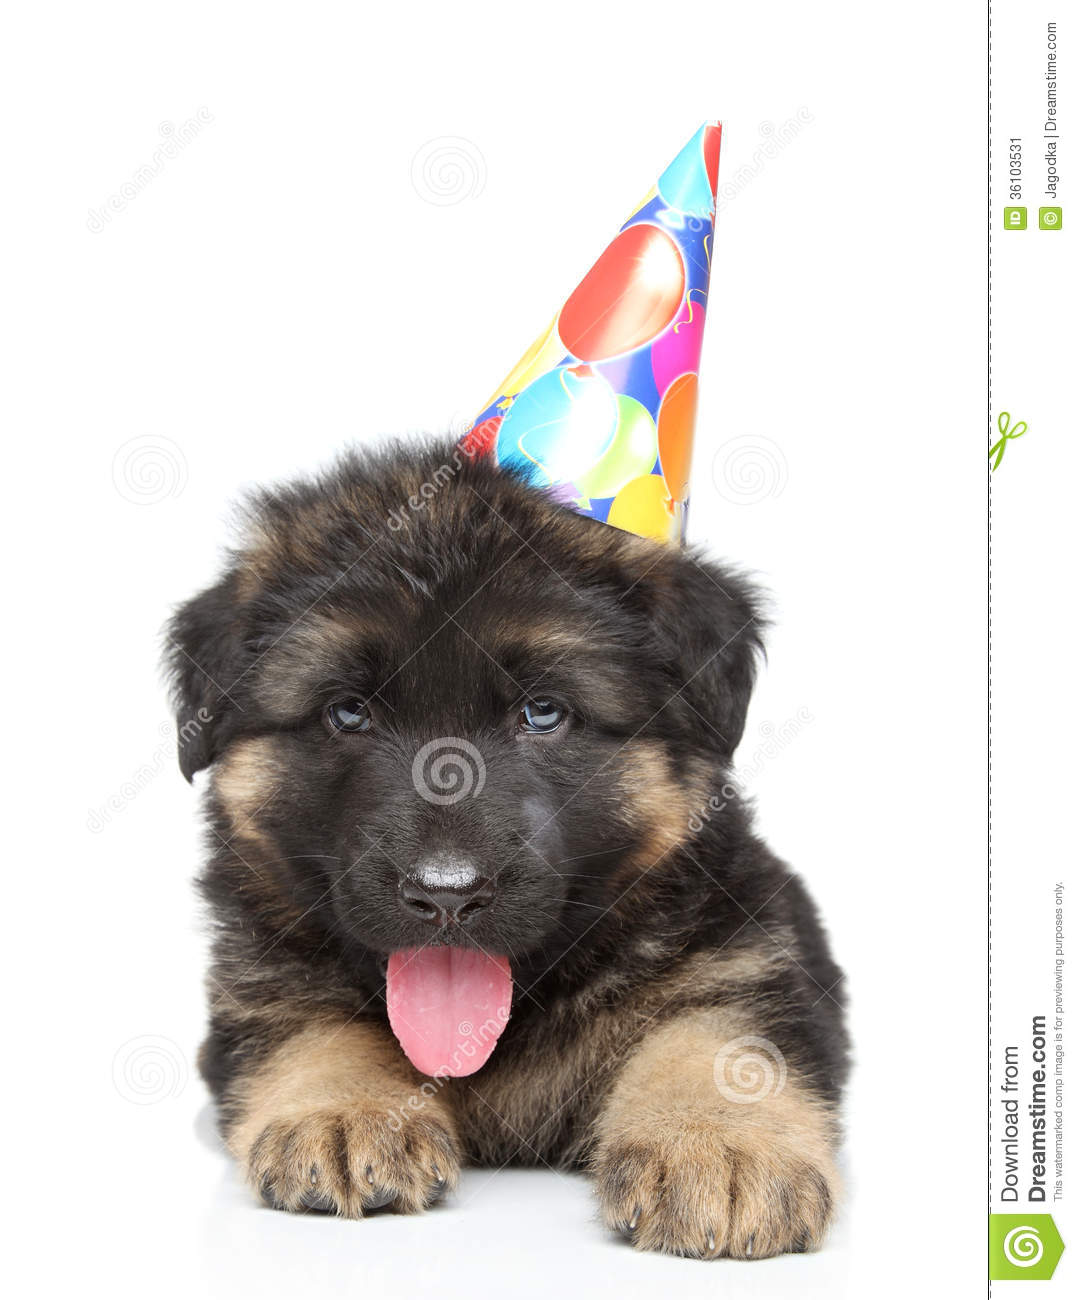 German Shepherd Puppy In Party Cone Stock Image Image Of Cute